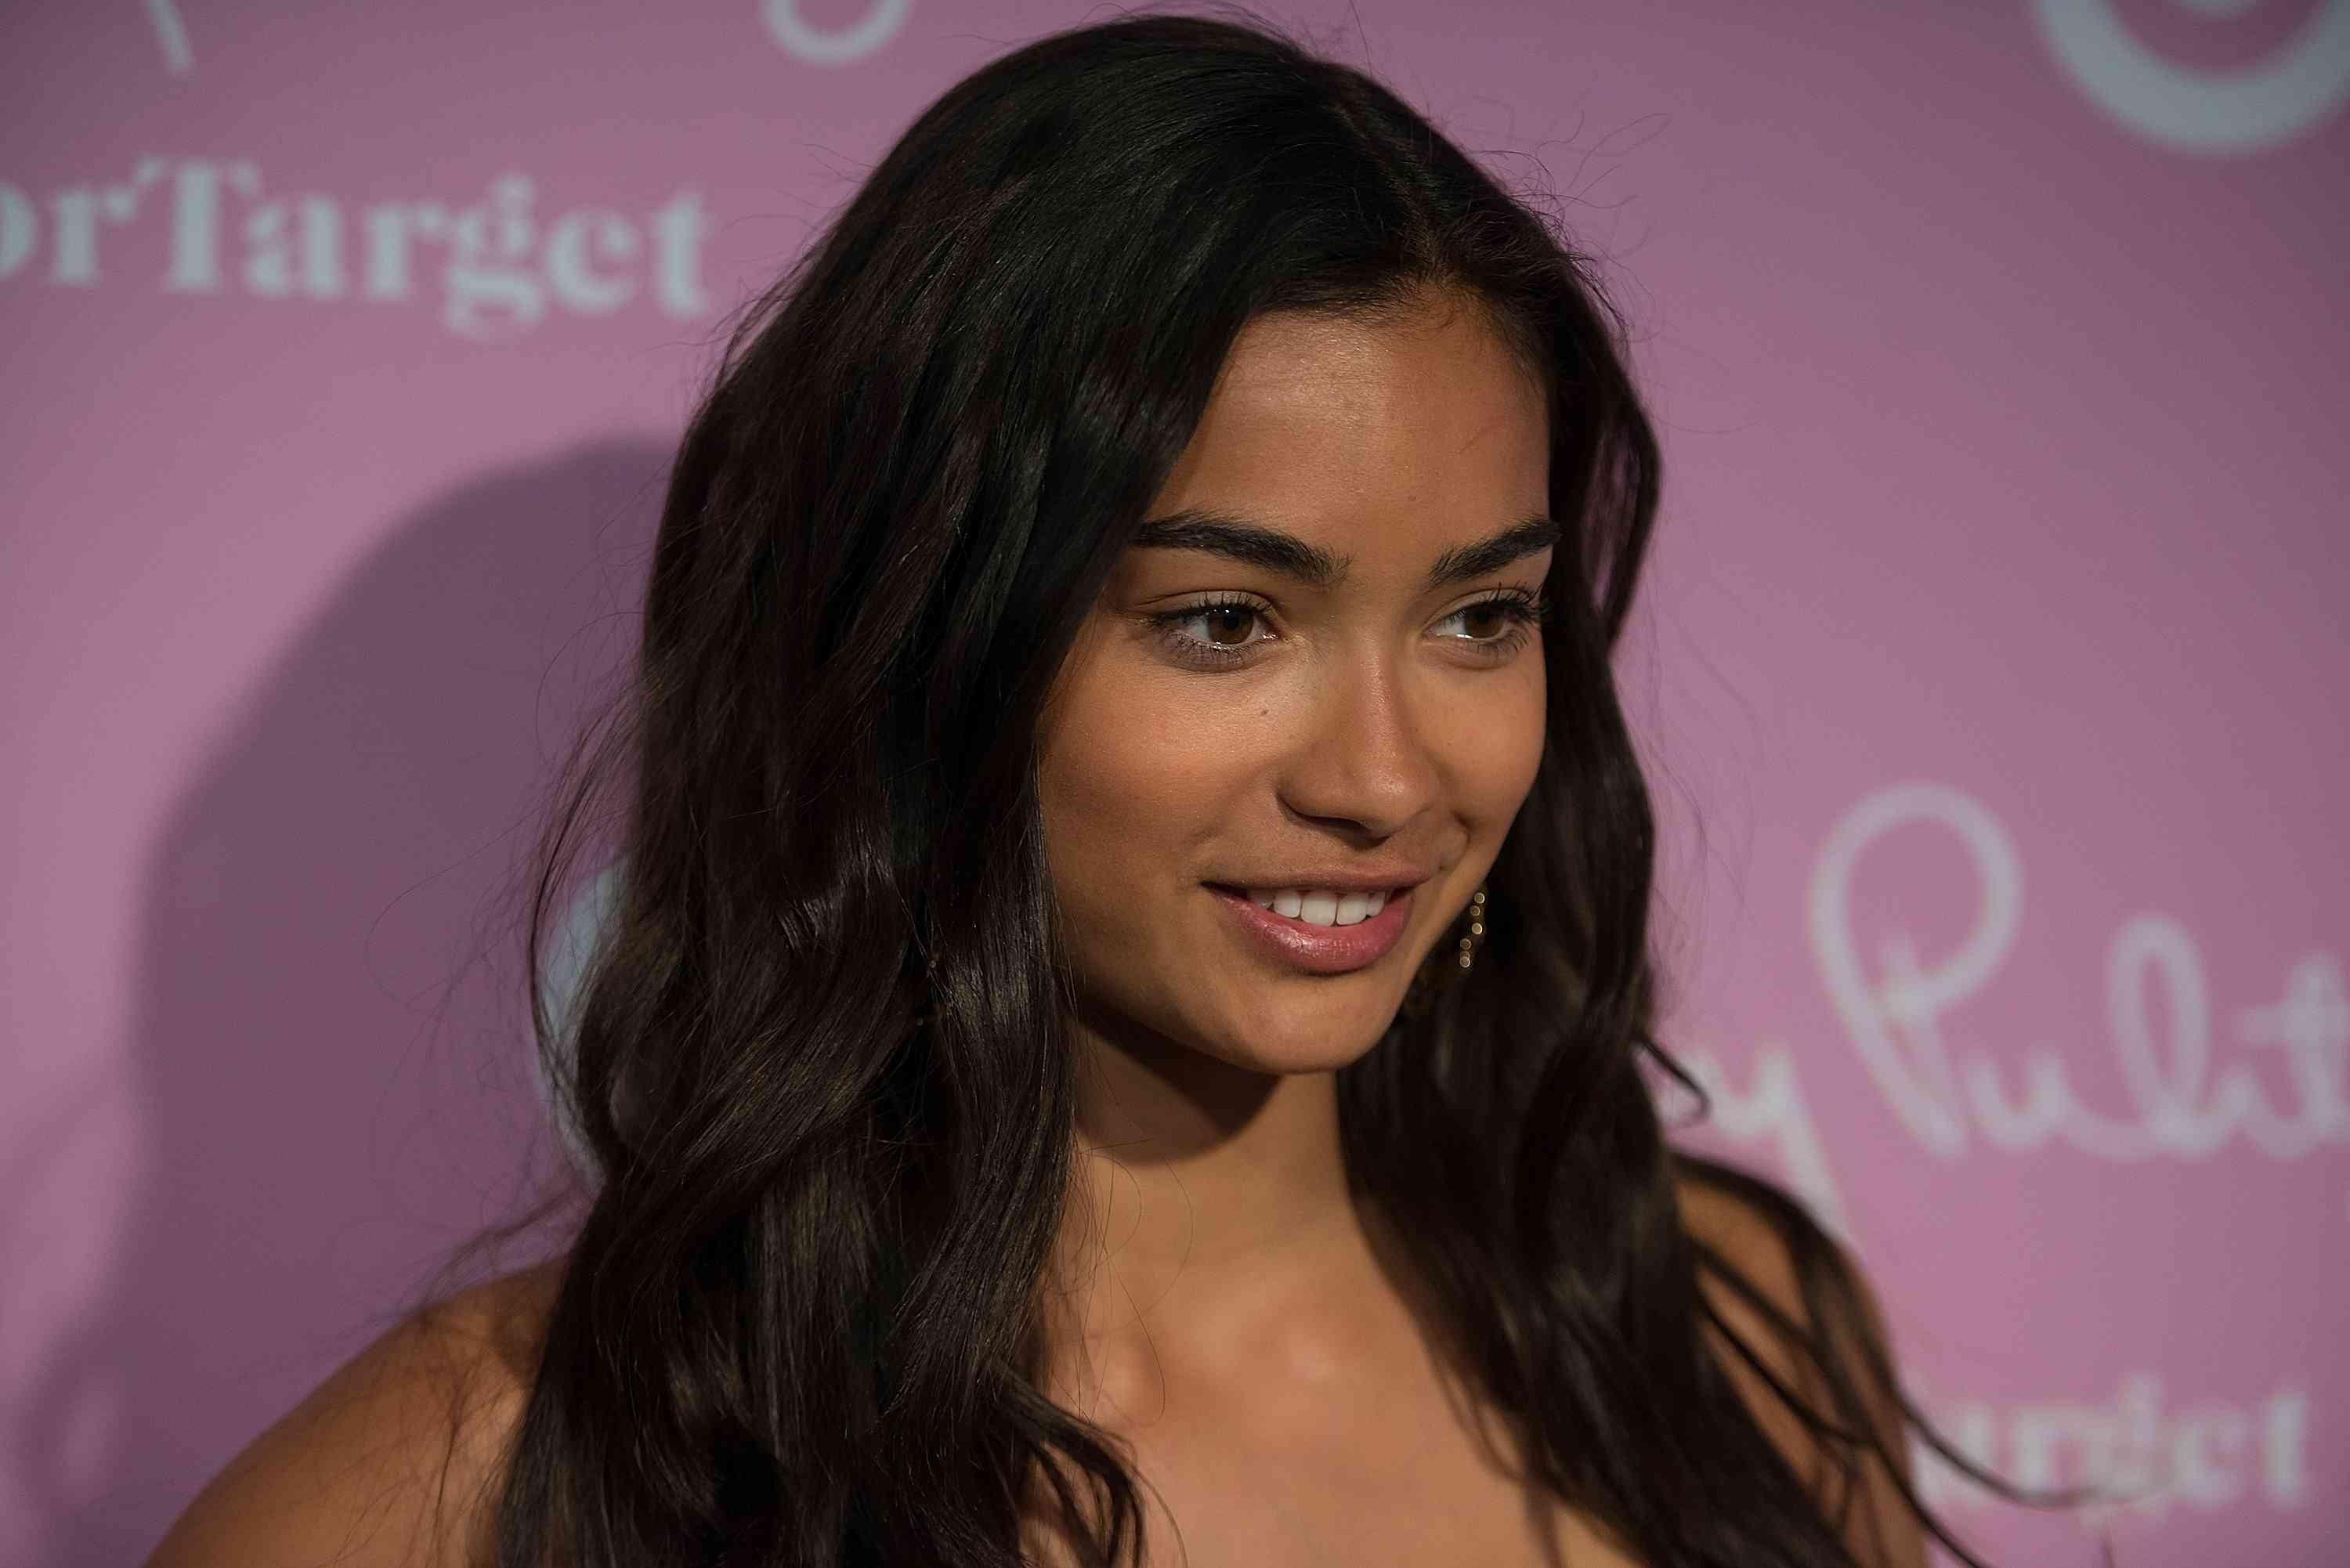 Kelly Gale at a red carpet event.